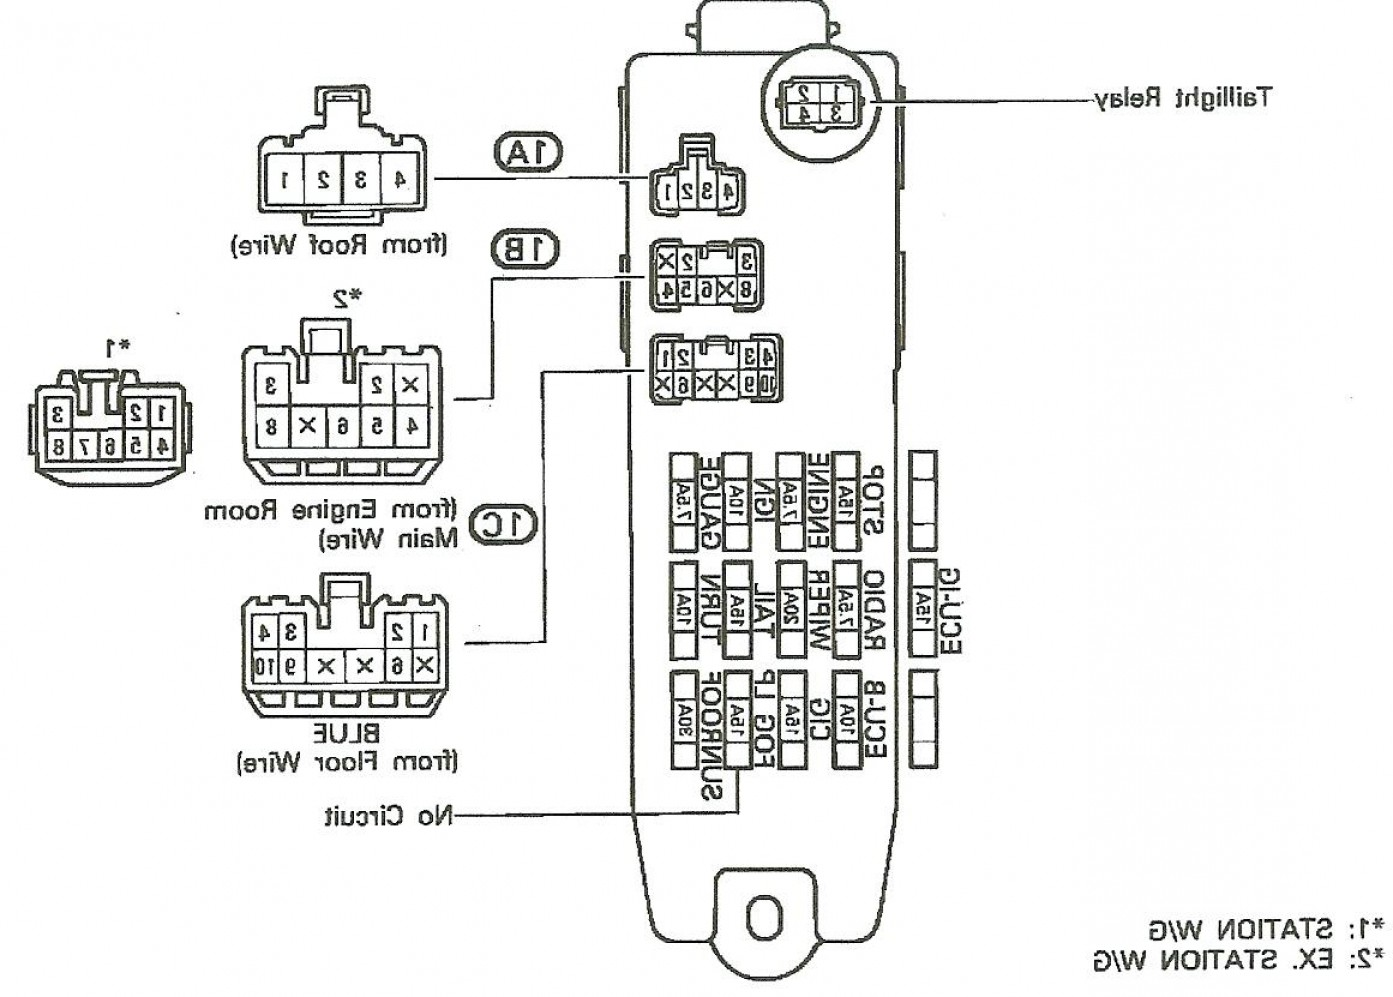 Wiring Vector Diagram Vc306jd